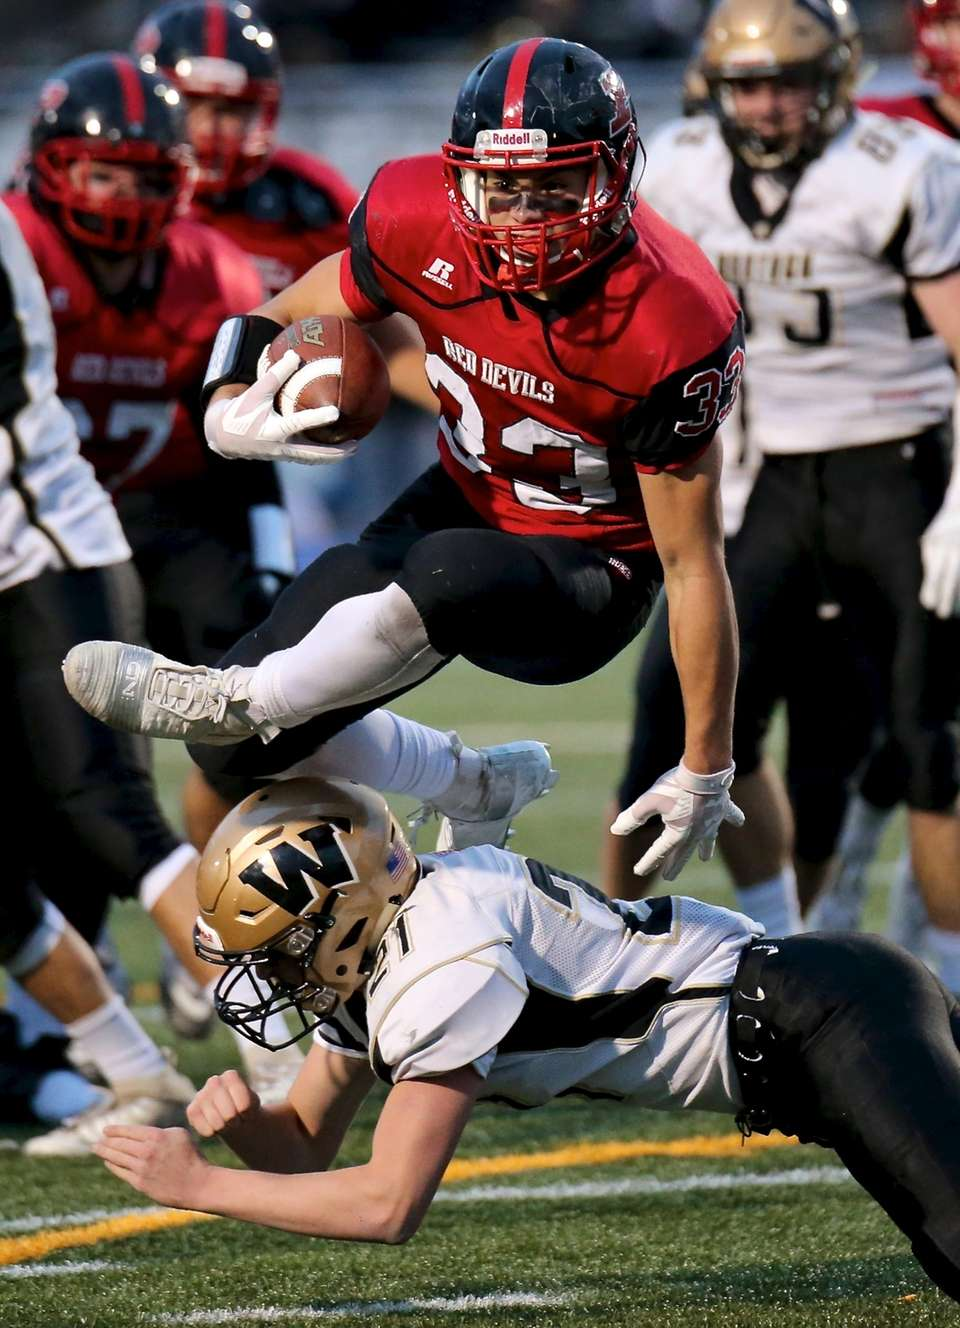 Plainedge RB Dion Kuinlan leaps over the Wantagh